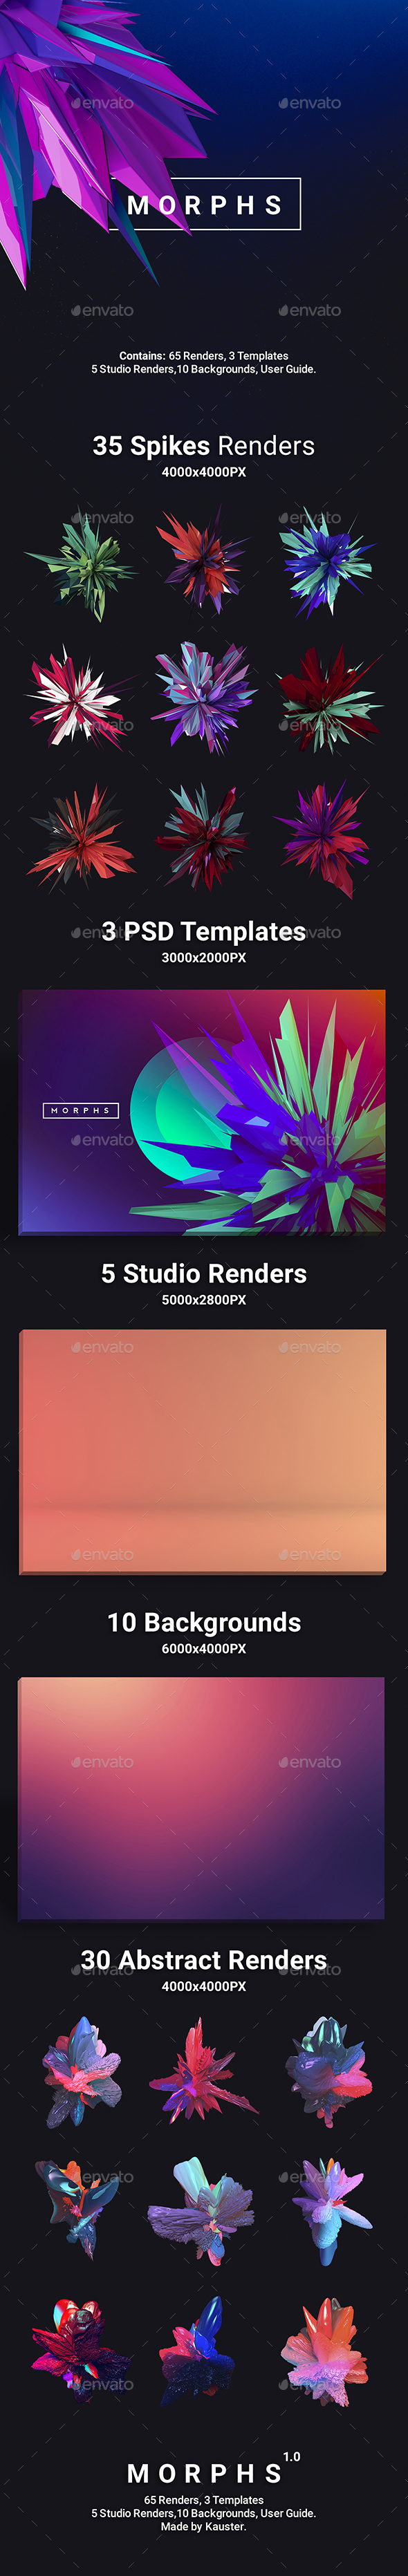 Morphs - Abstract Renders Toolkit - Miscellaneous Graphics